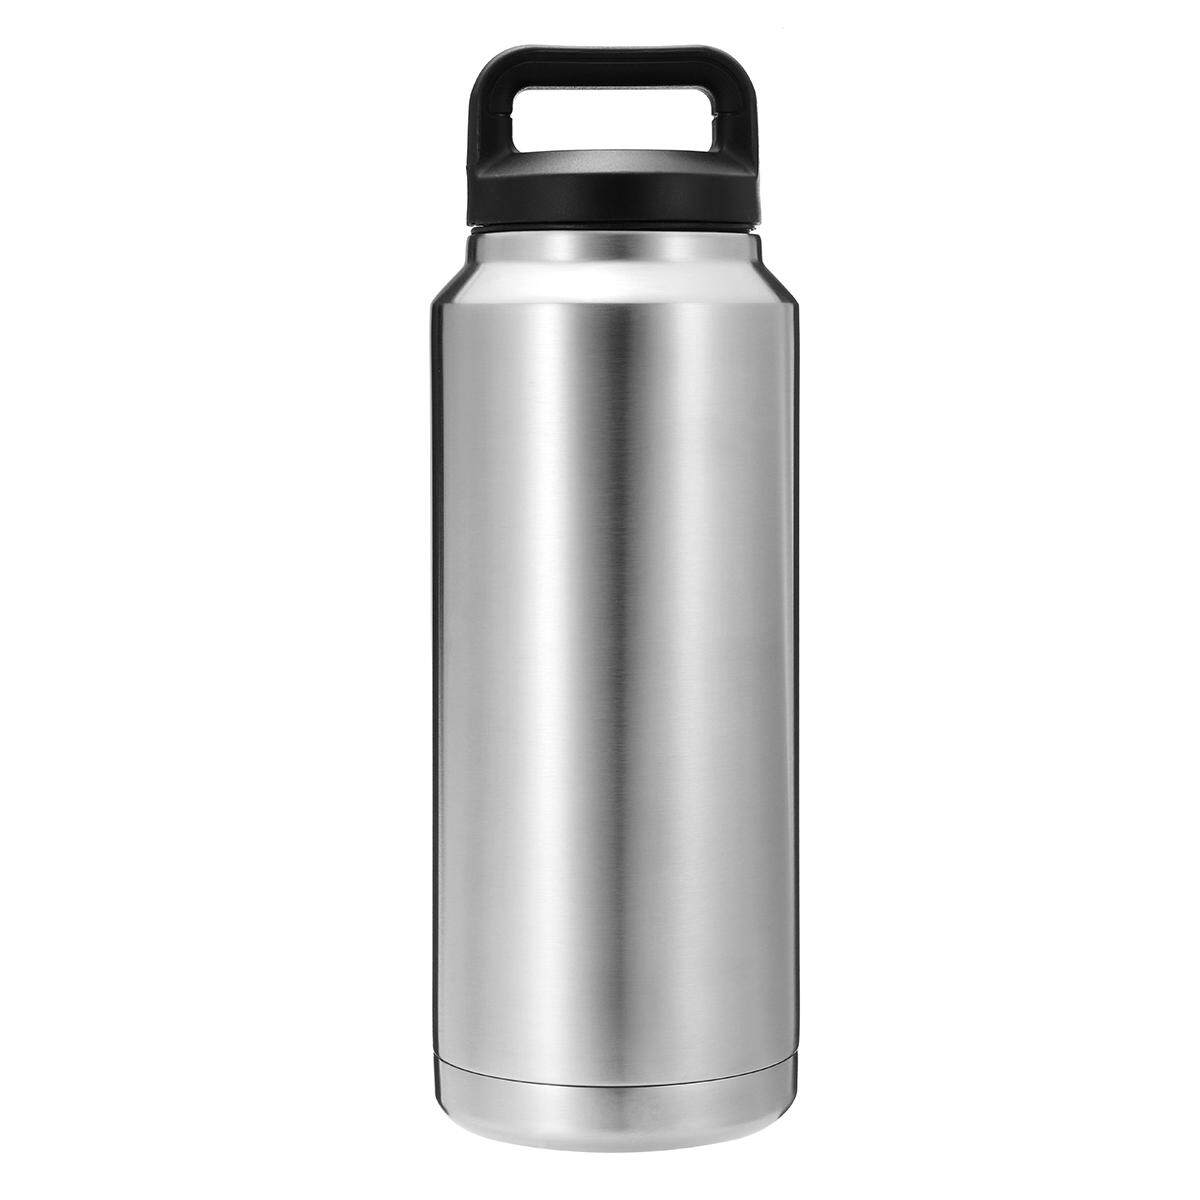 8oz/36oz/64oz Stainless Steel Vacuum Insulated Water Bottle Travel Thermos Cup 36oz By Moonbeam.